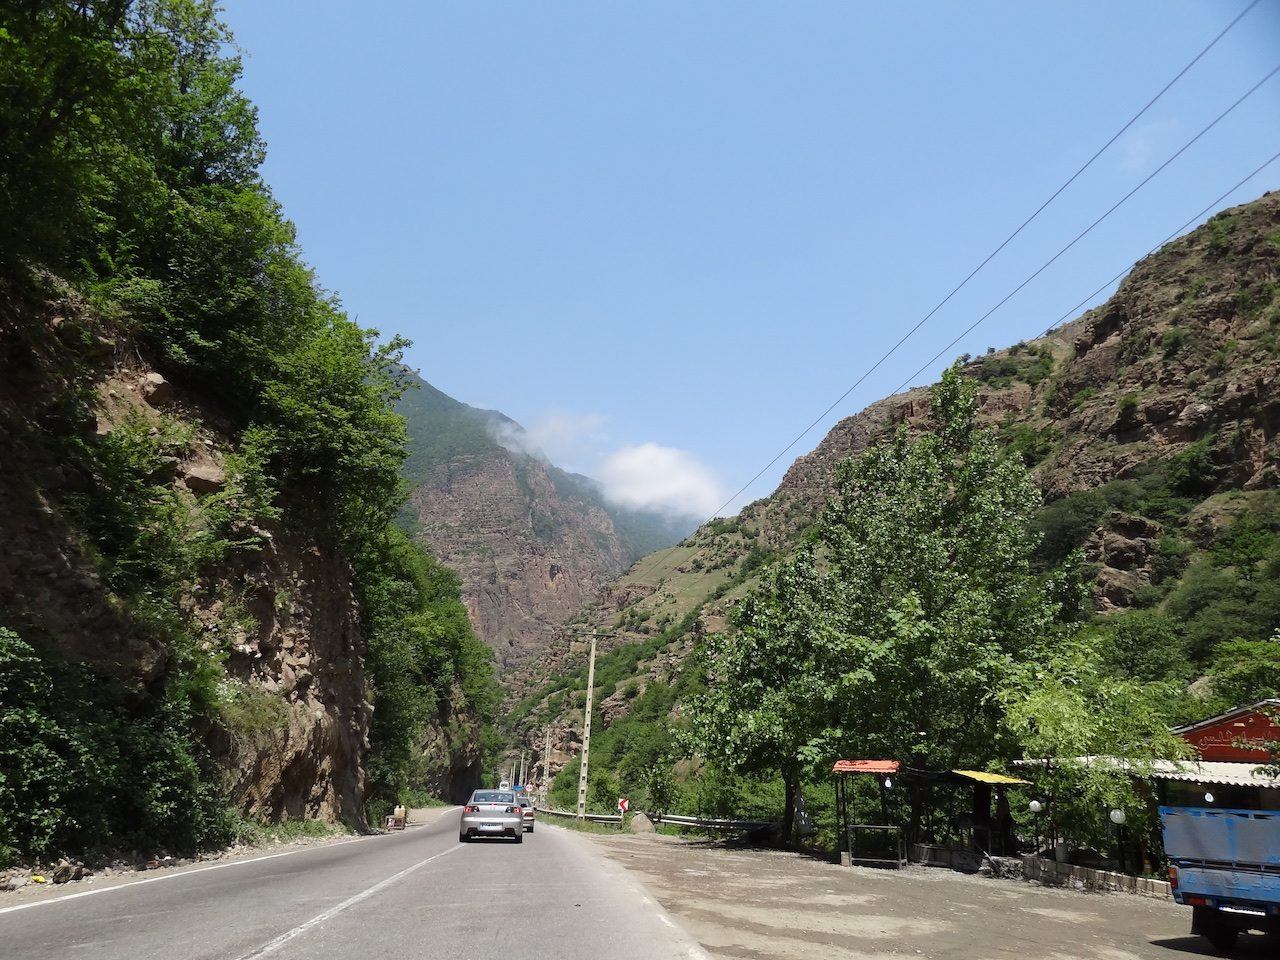 On the road to Rasht